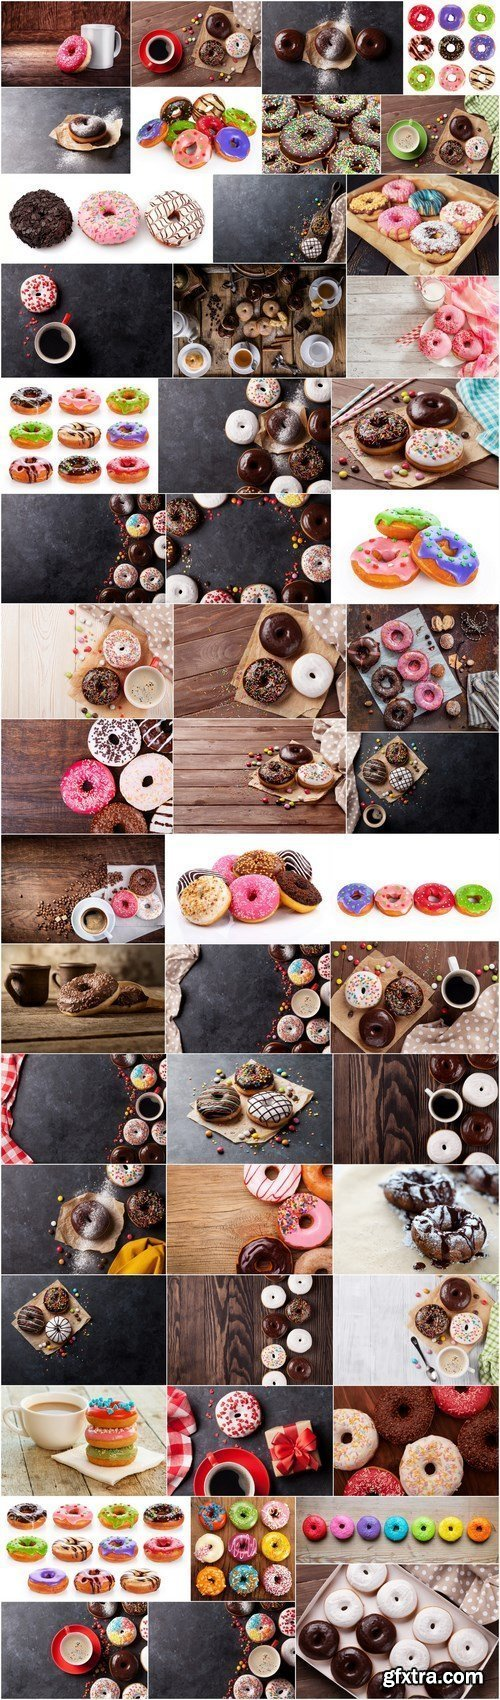 Tasty Doughnuts - Set of 50xUHQ JPEG Professional Stock Images